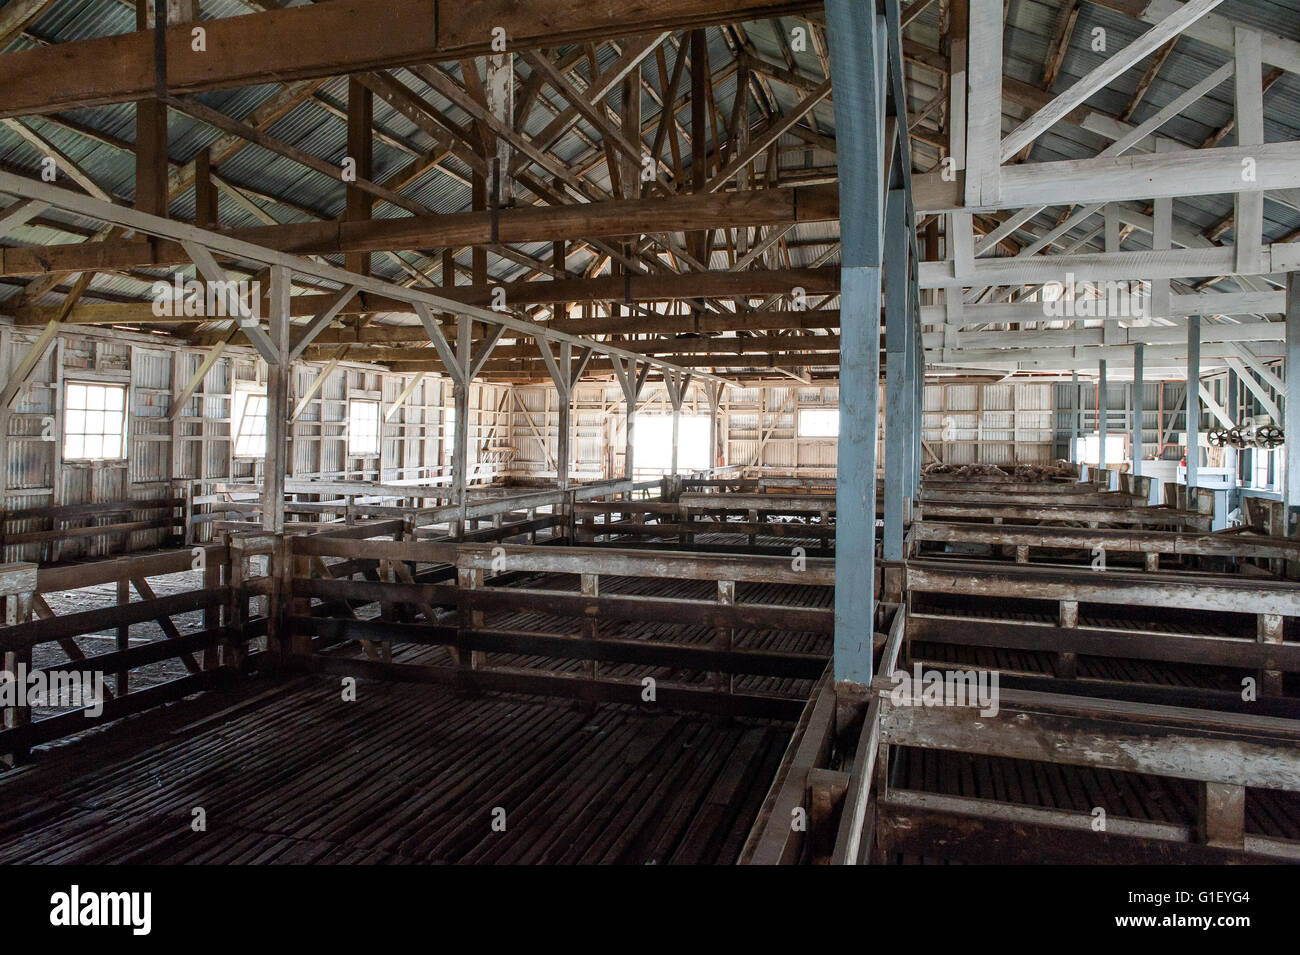 Sheep shearing wool room at Cerro Guido estancia (estate) Torres del Paine National Park Chilean Patagonia Chile - Stock Image